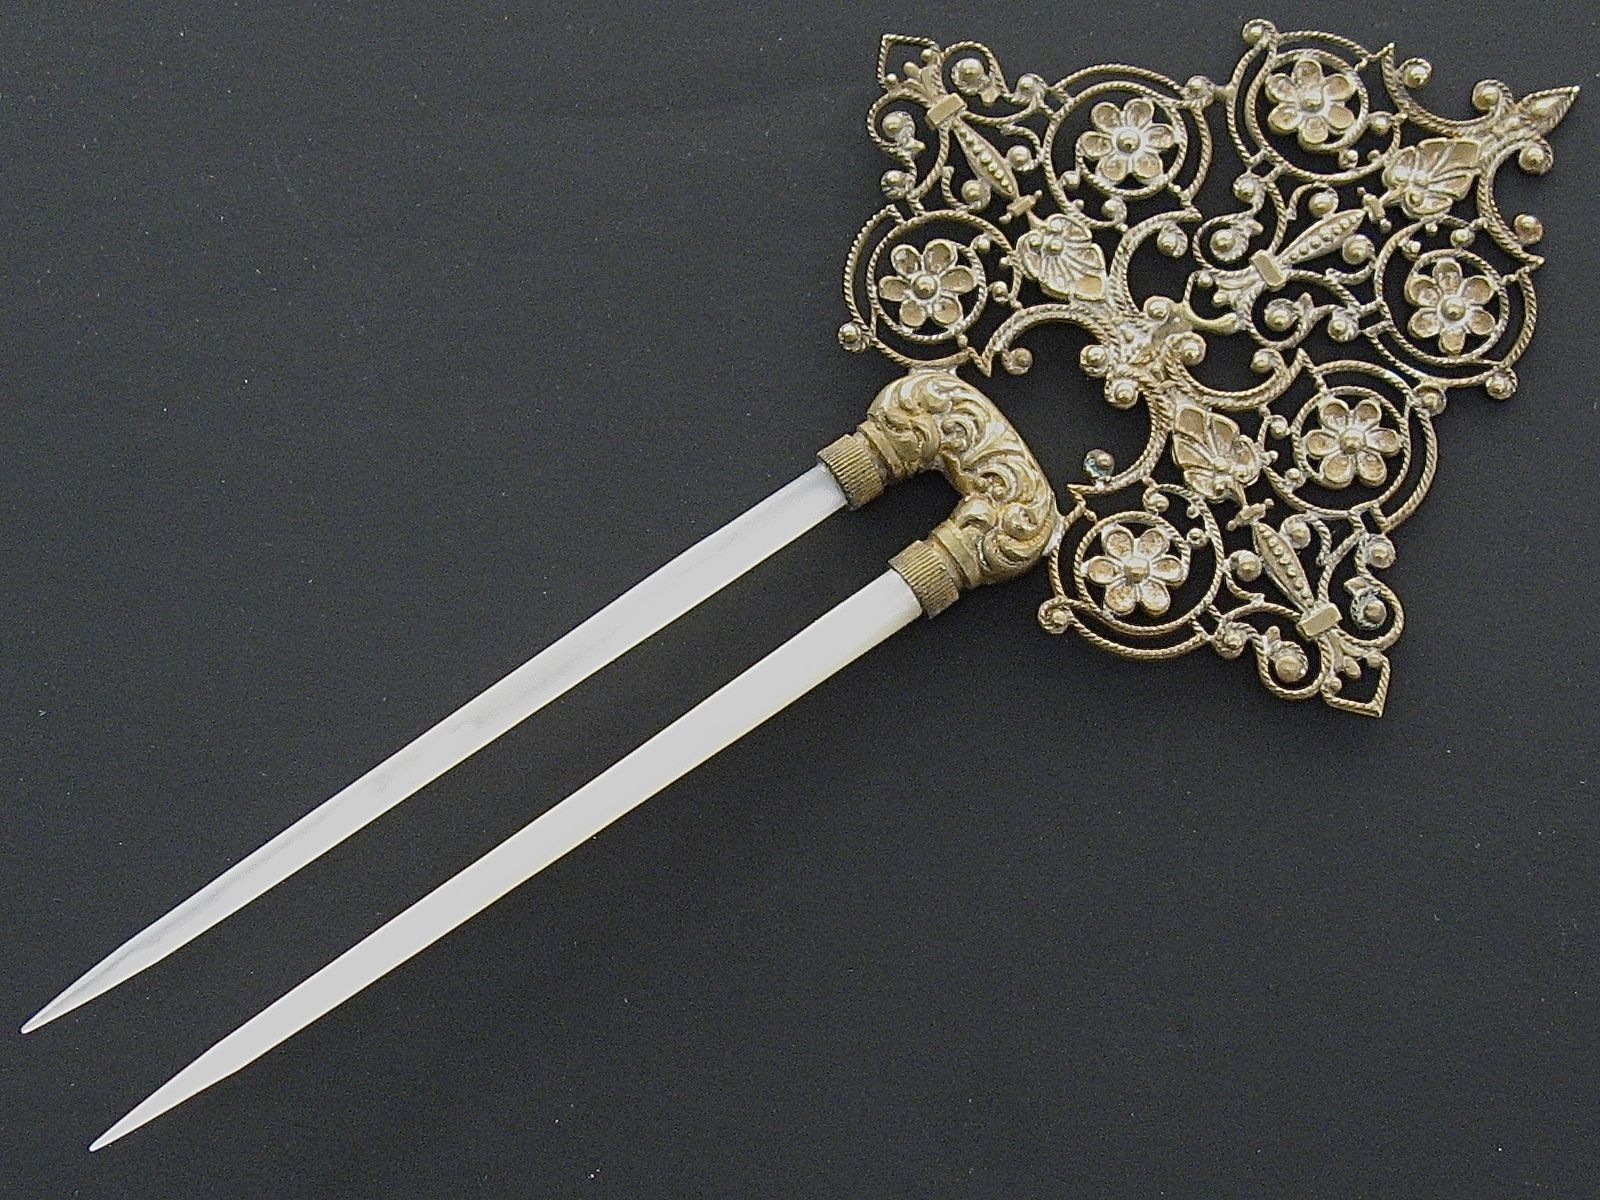 Butterfly hair accessories for weddings uk - Antique Gilt Metal Floral Filigree Mother Of Pearl Hair Comb Hair Pin C 1890